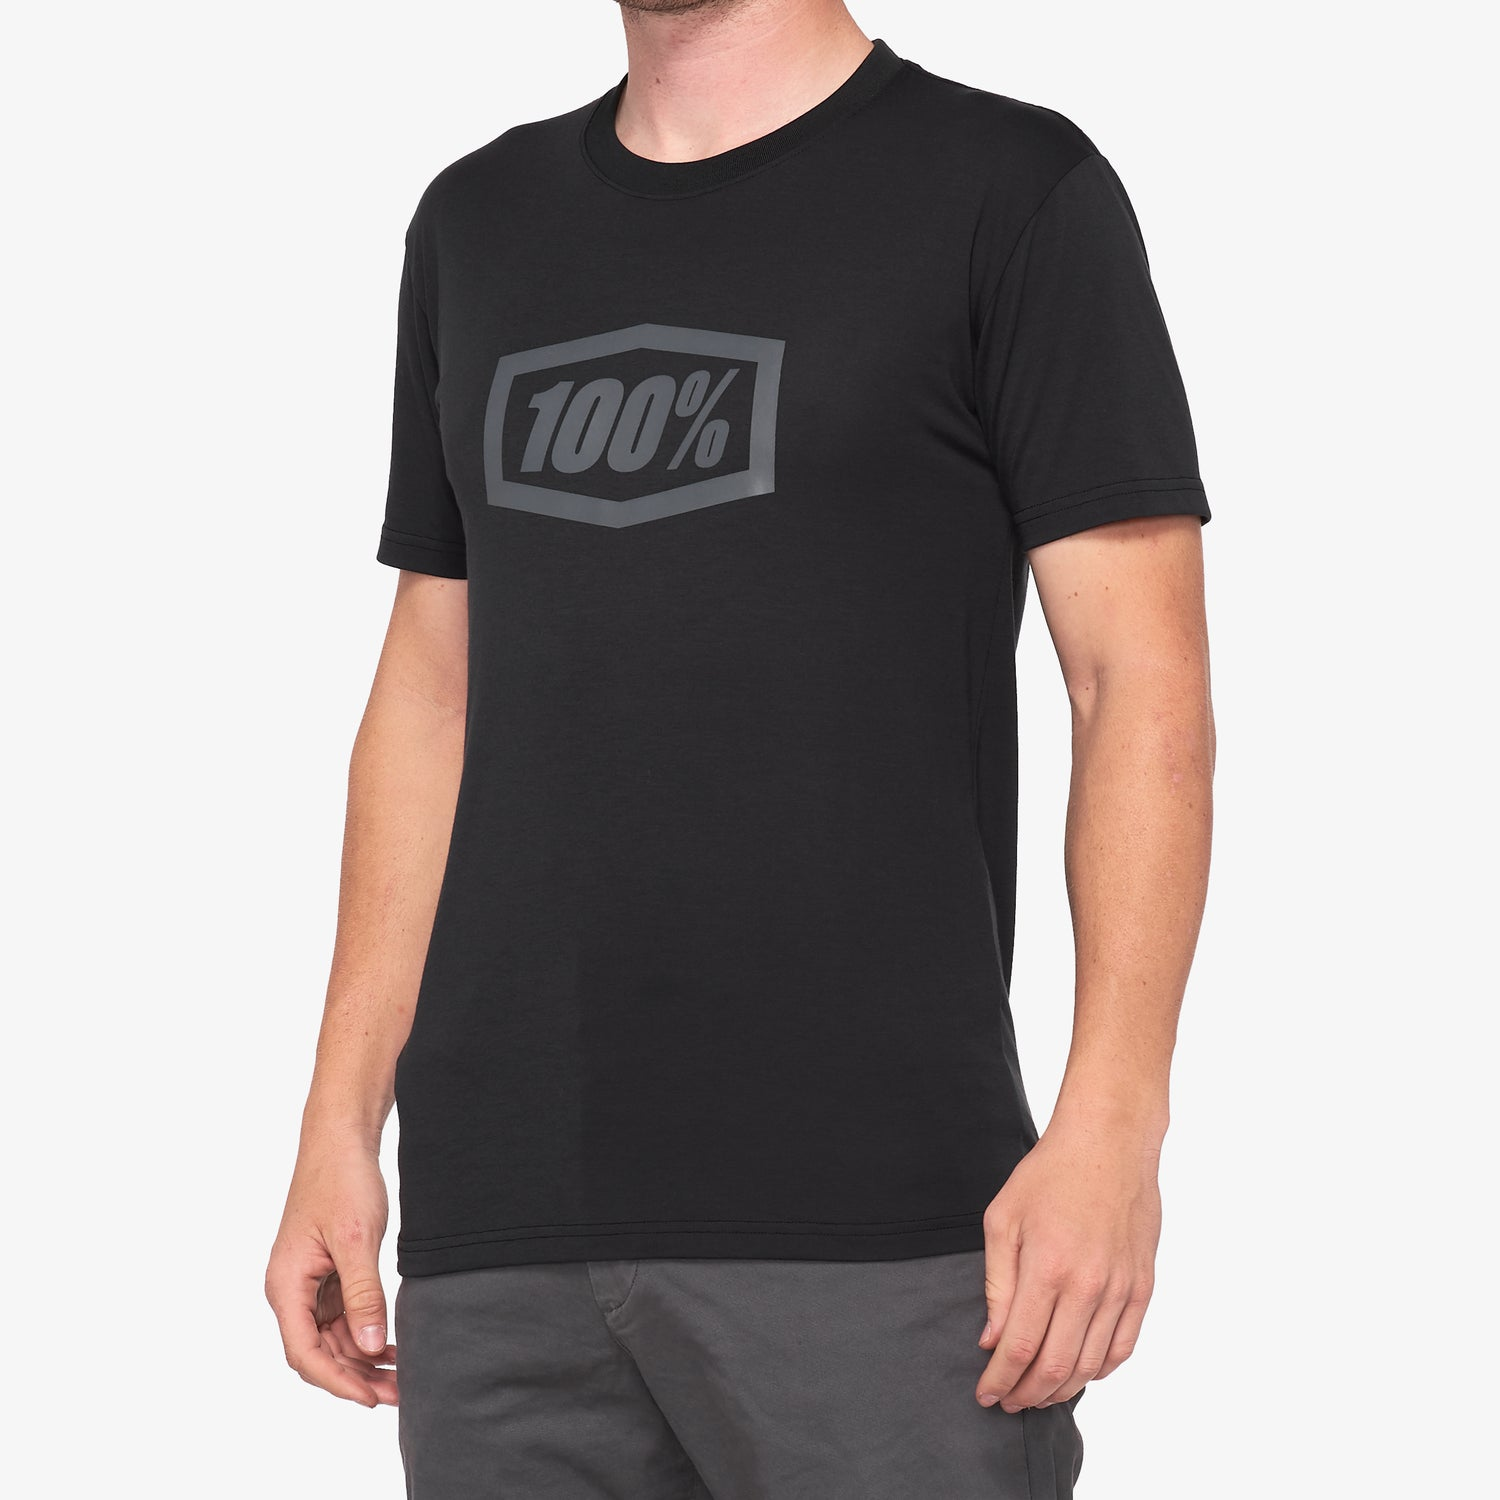 ESSENTIAL Tech T-shirt Black/Grey